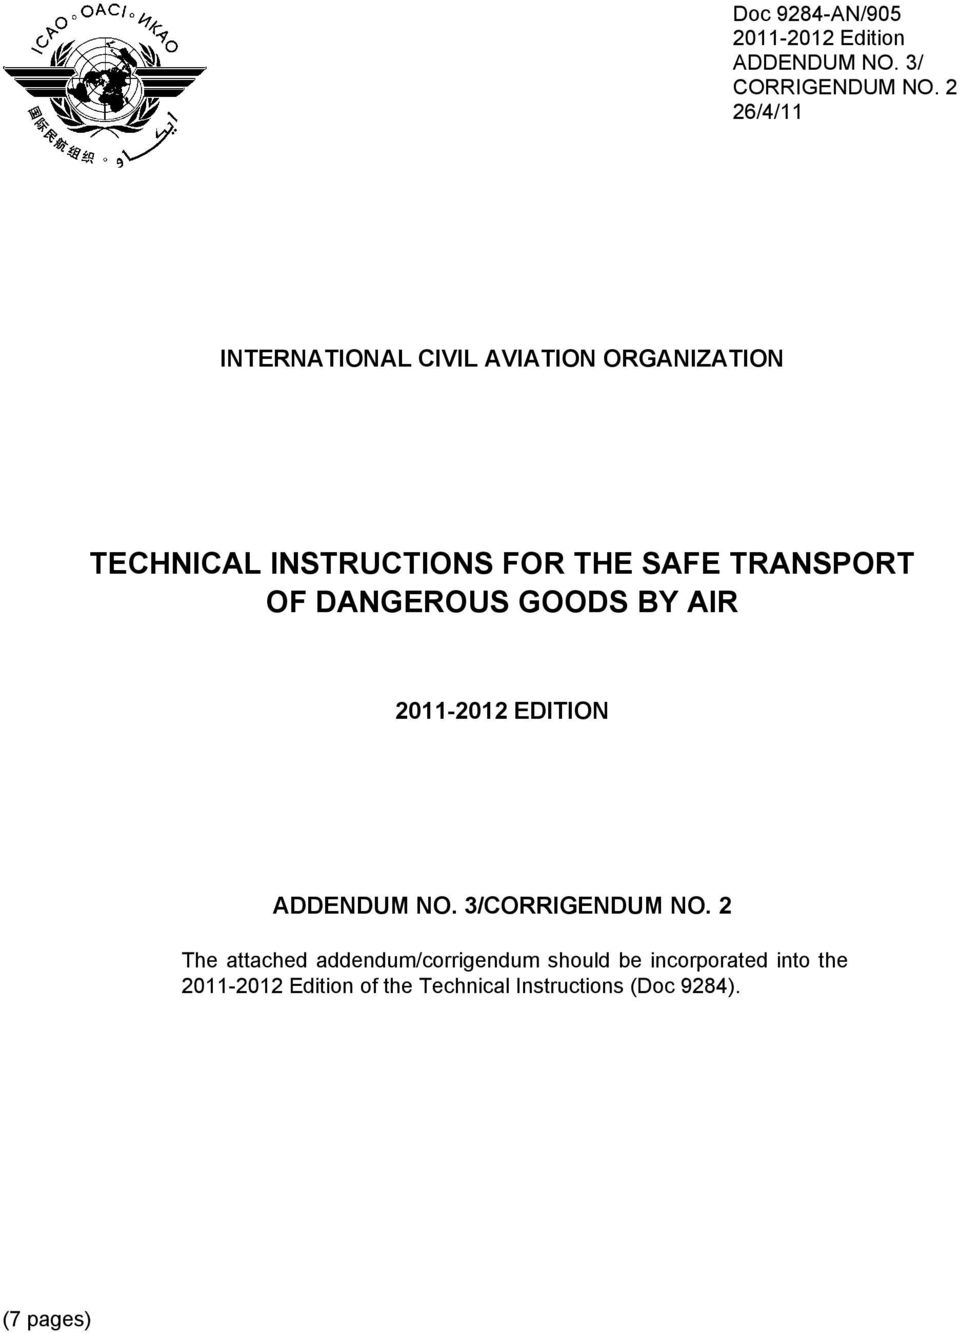 INSTRUCTIONS FOR THE SAFE TRANSPORT OF DANGEROUS GOODS BY AIR 2011-2012